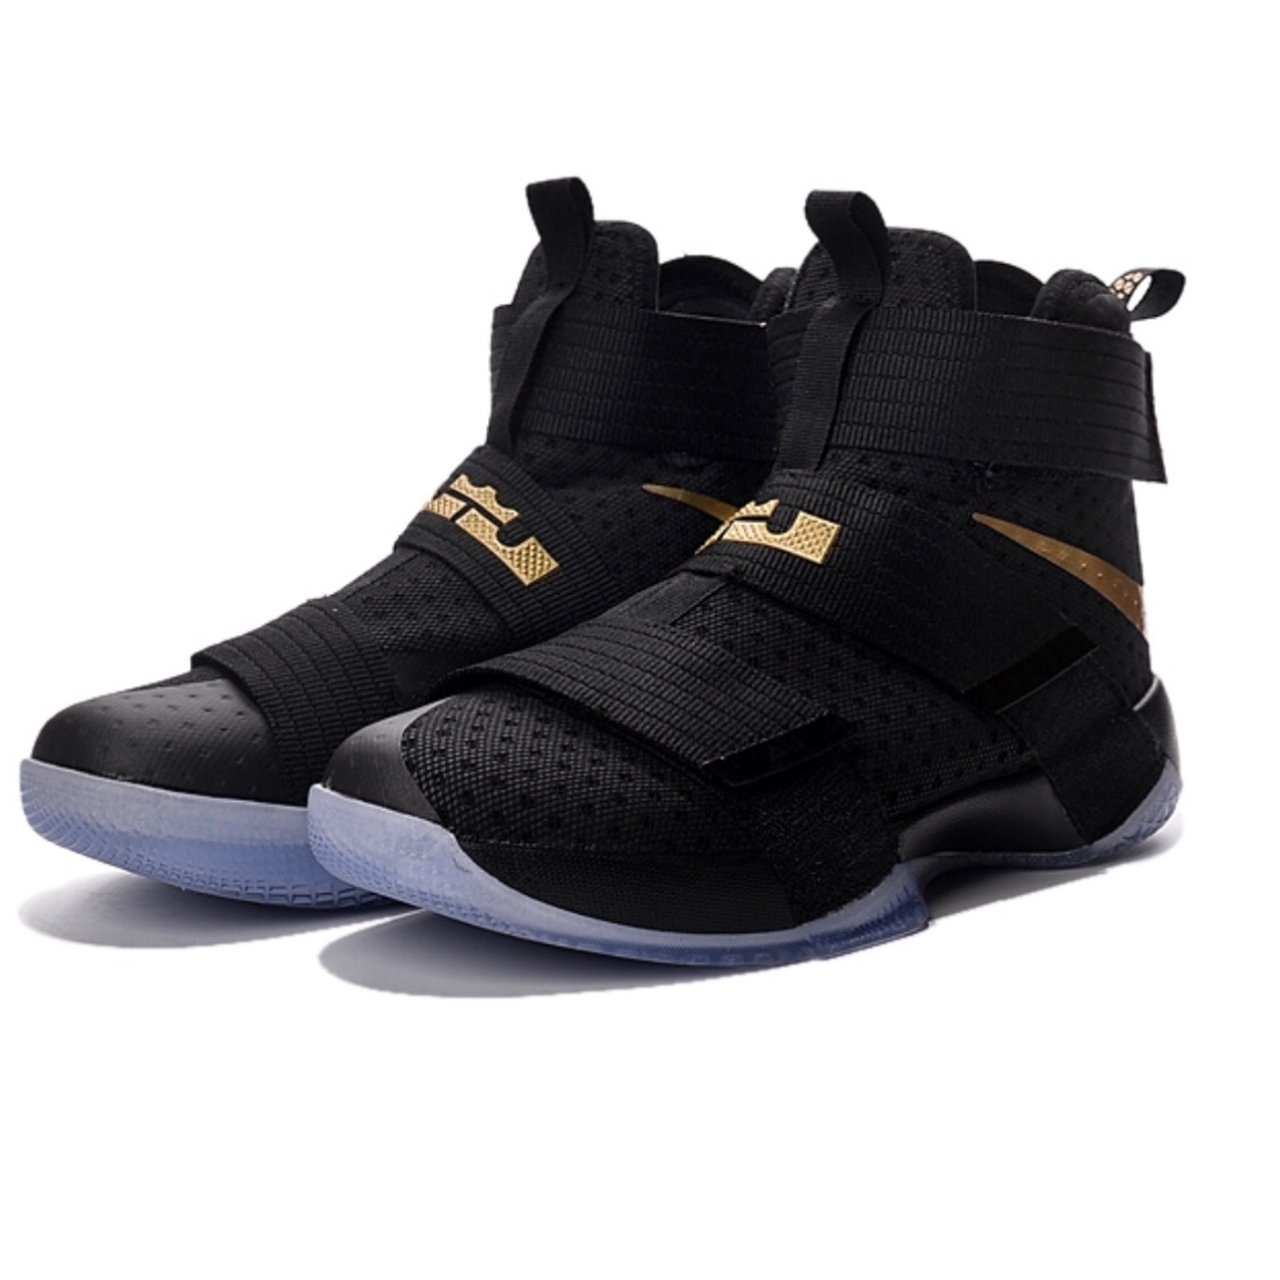 Nike Zoom LeBron Soldier 10 iD NOTE gentle used for couple - Depop d5d32a03399d